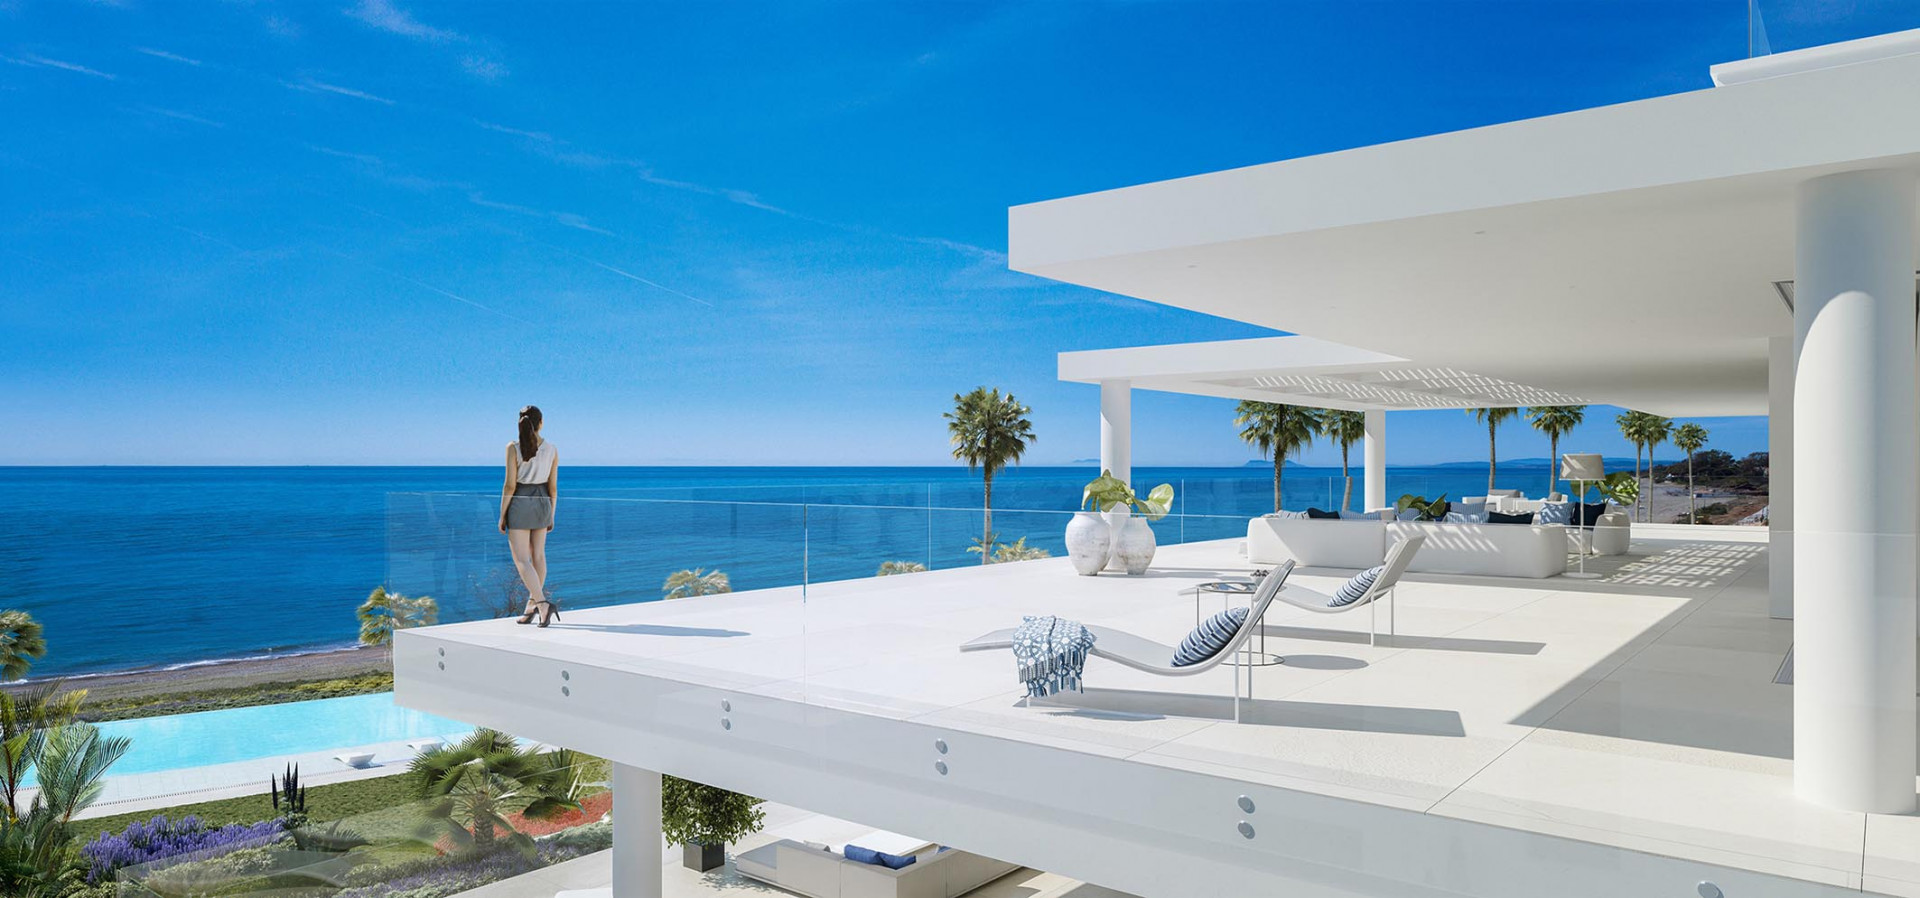 Only 28 amazingly large 3 & 4 bedroom residences on the front line of the Mediterranean Sea.